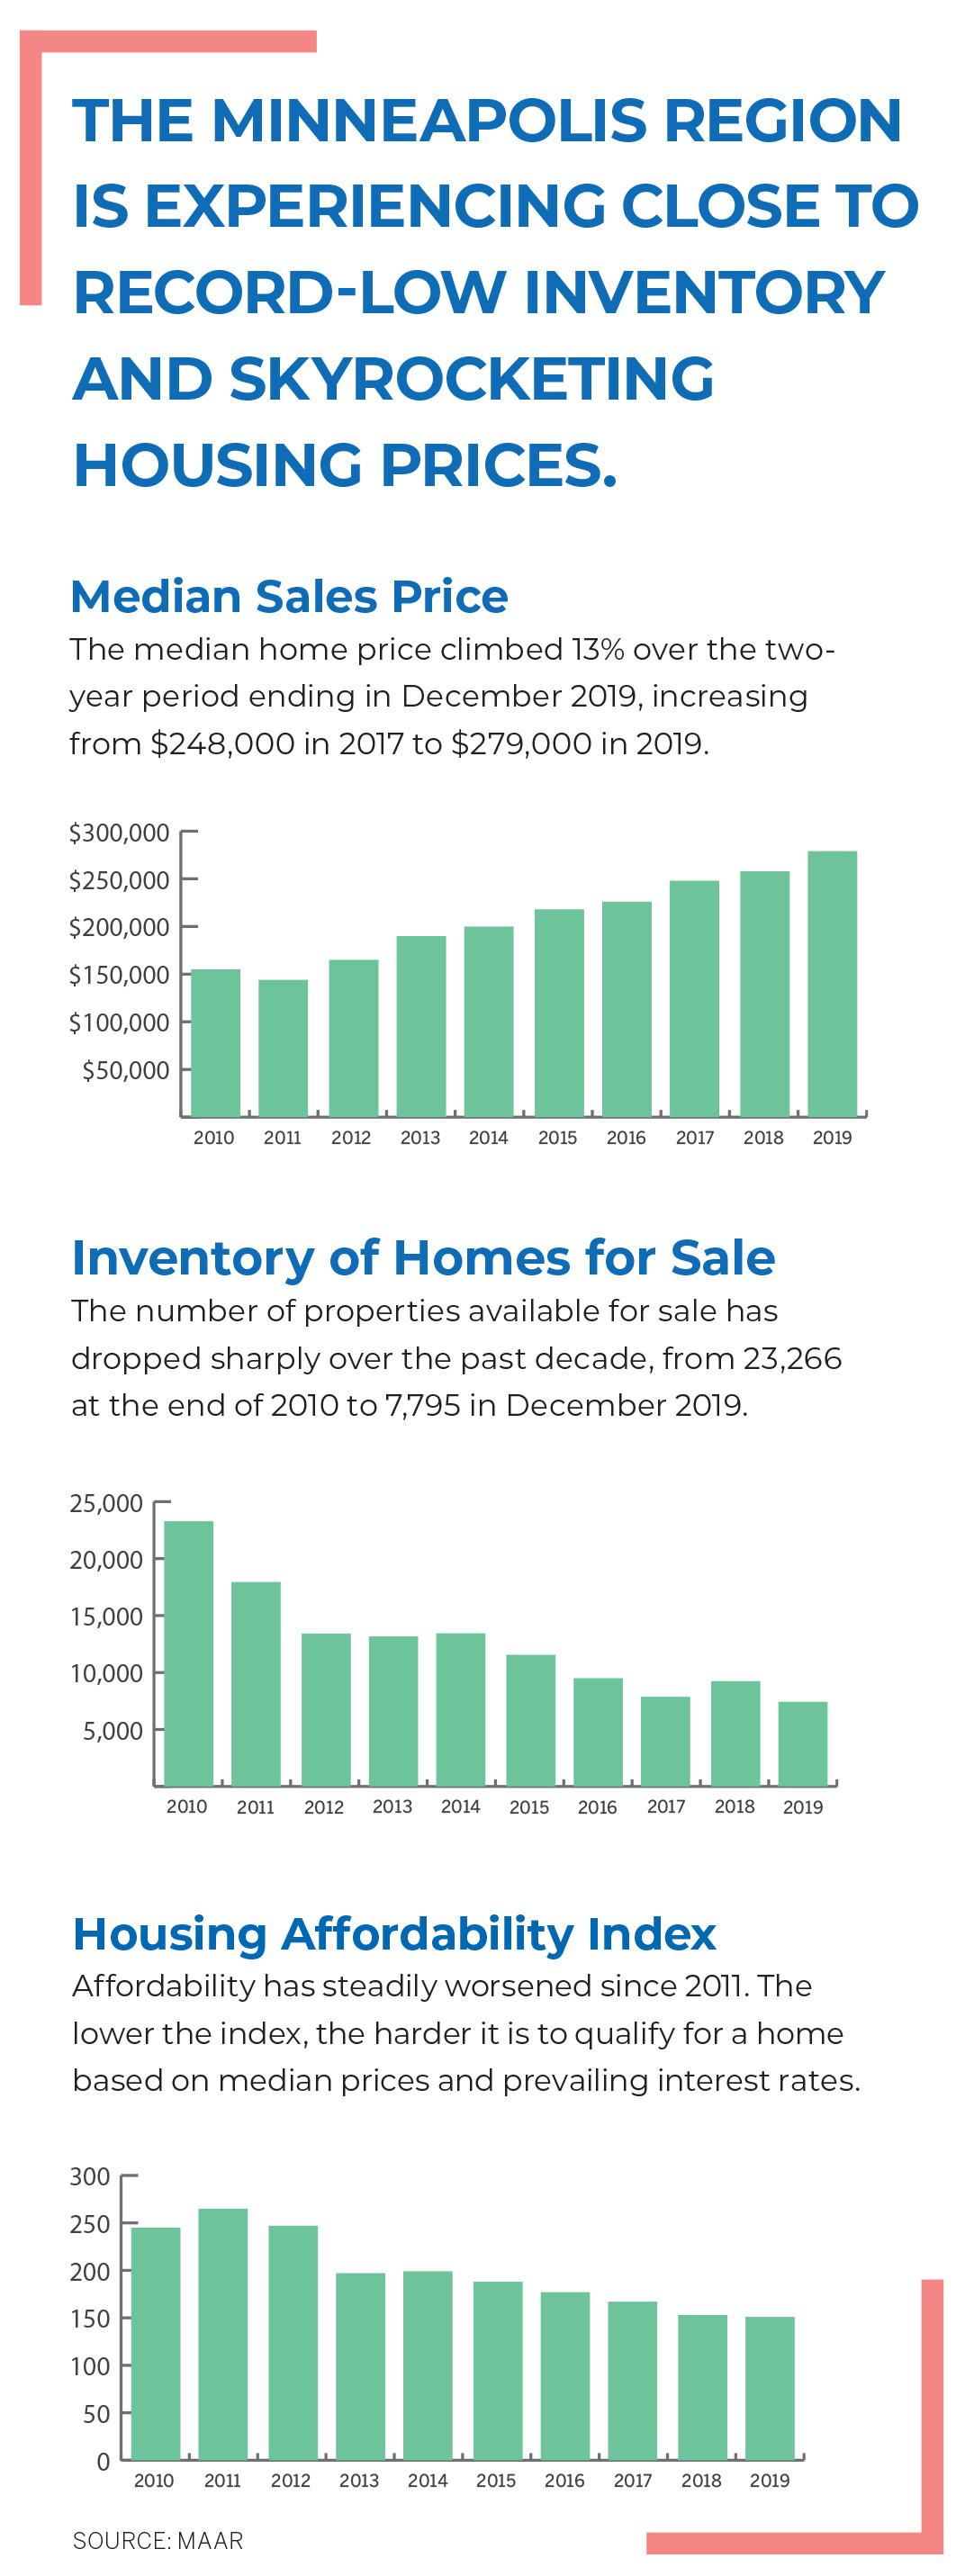 Sales, inventory, affordability charts from MAAR data. Click on image to access detailed info.